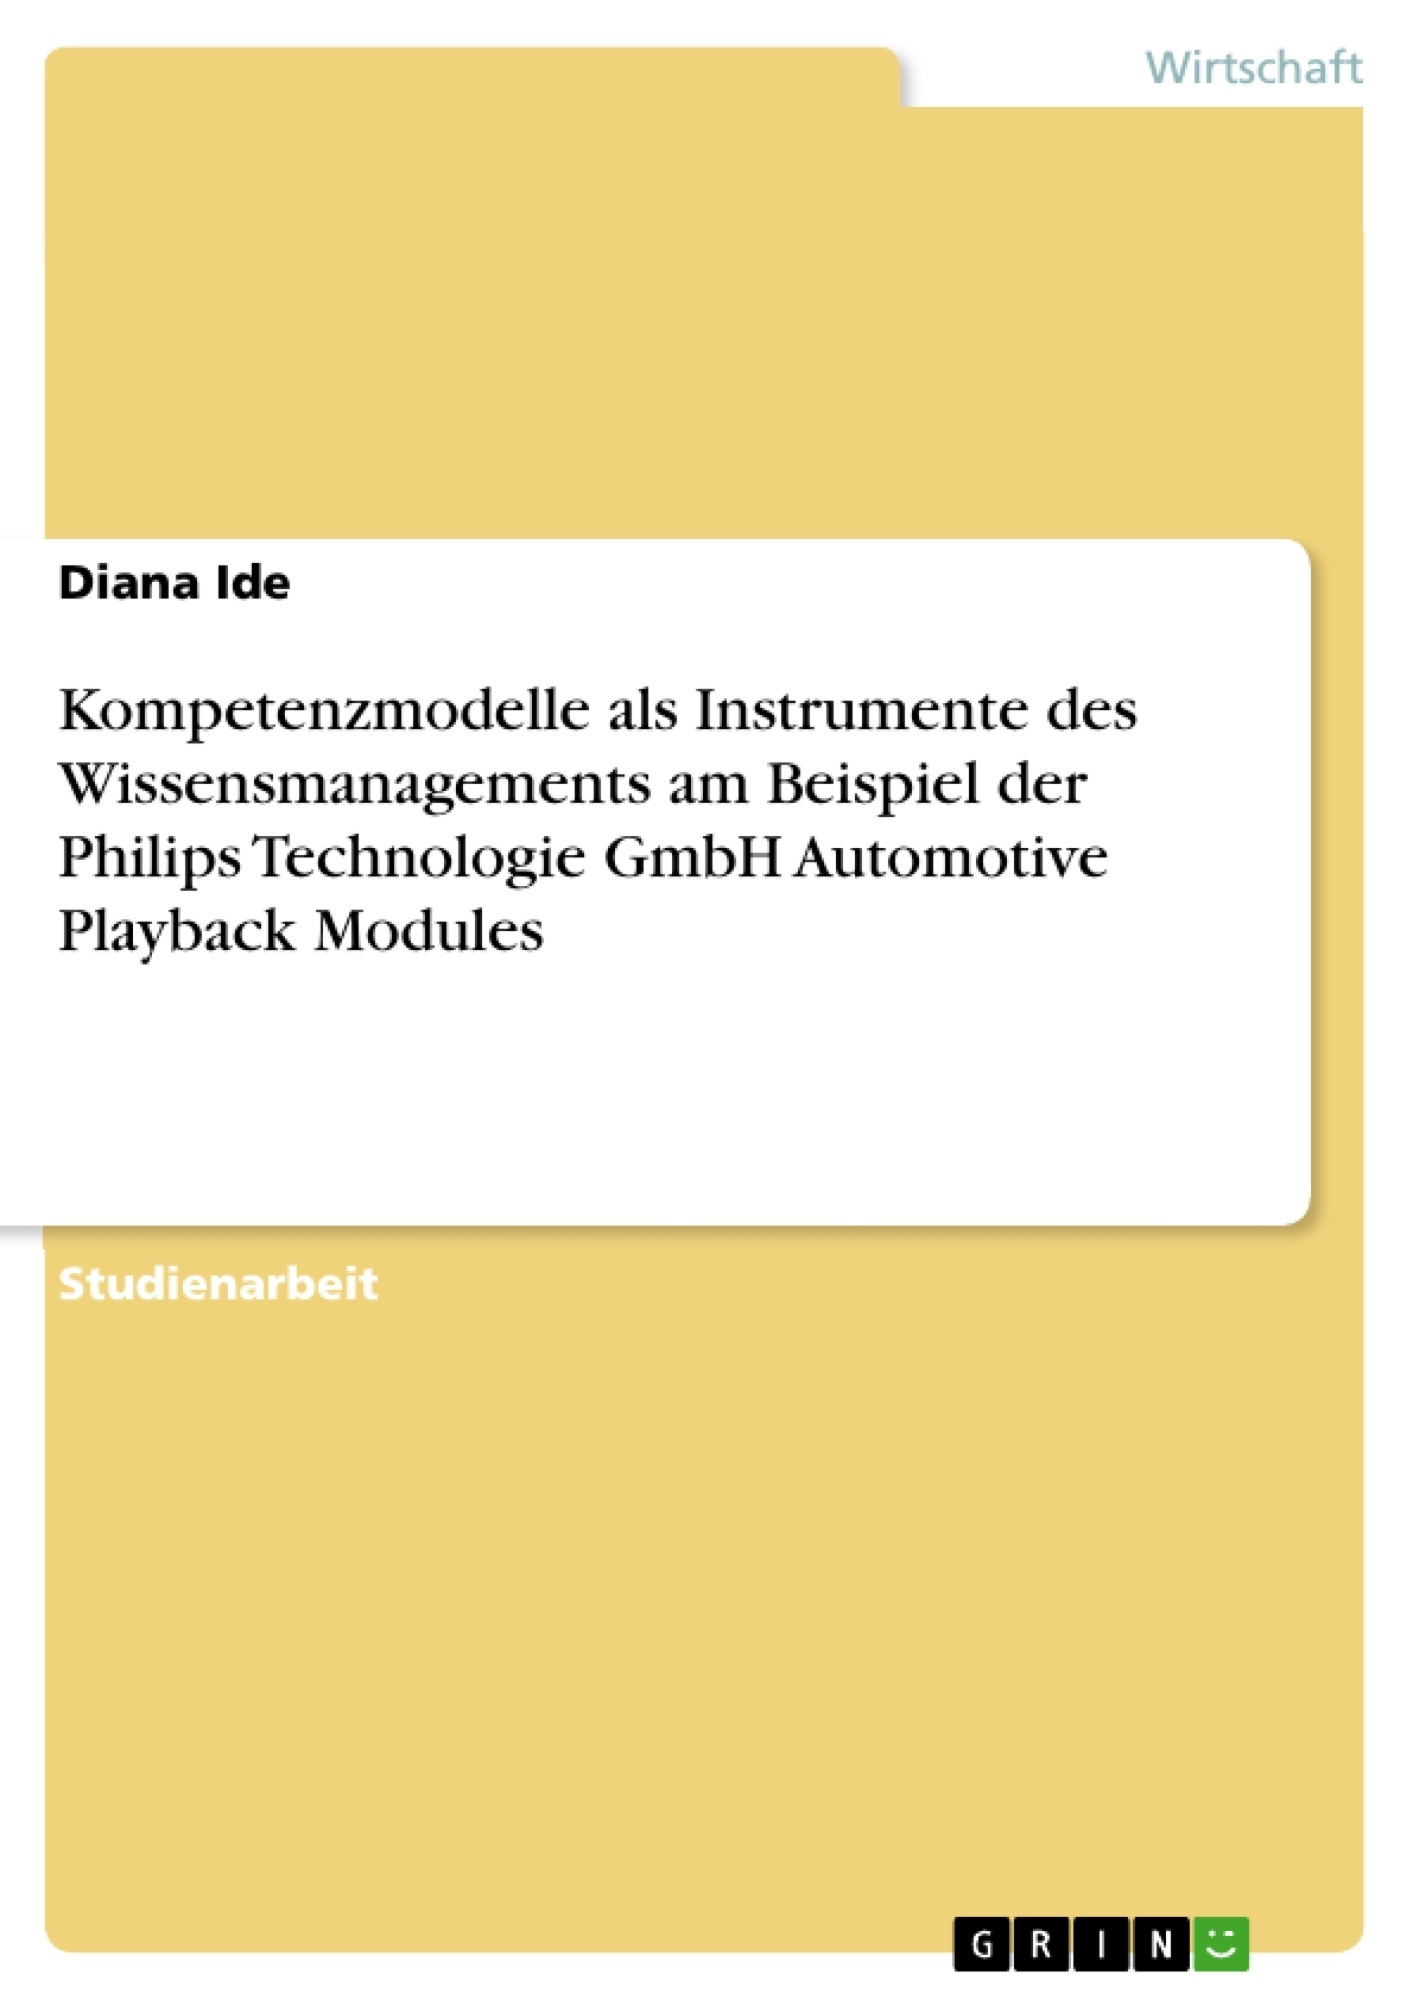 Titel: Kompetenzmodelle als Instrumente des Wissensmanagements am Beispiel der Philips Technologie GmbH Automotive Playback Modules